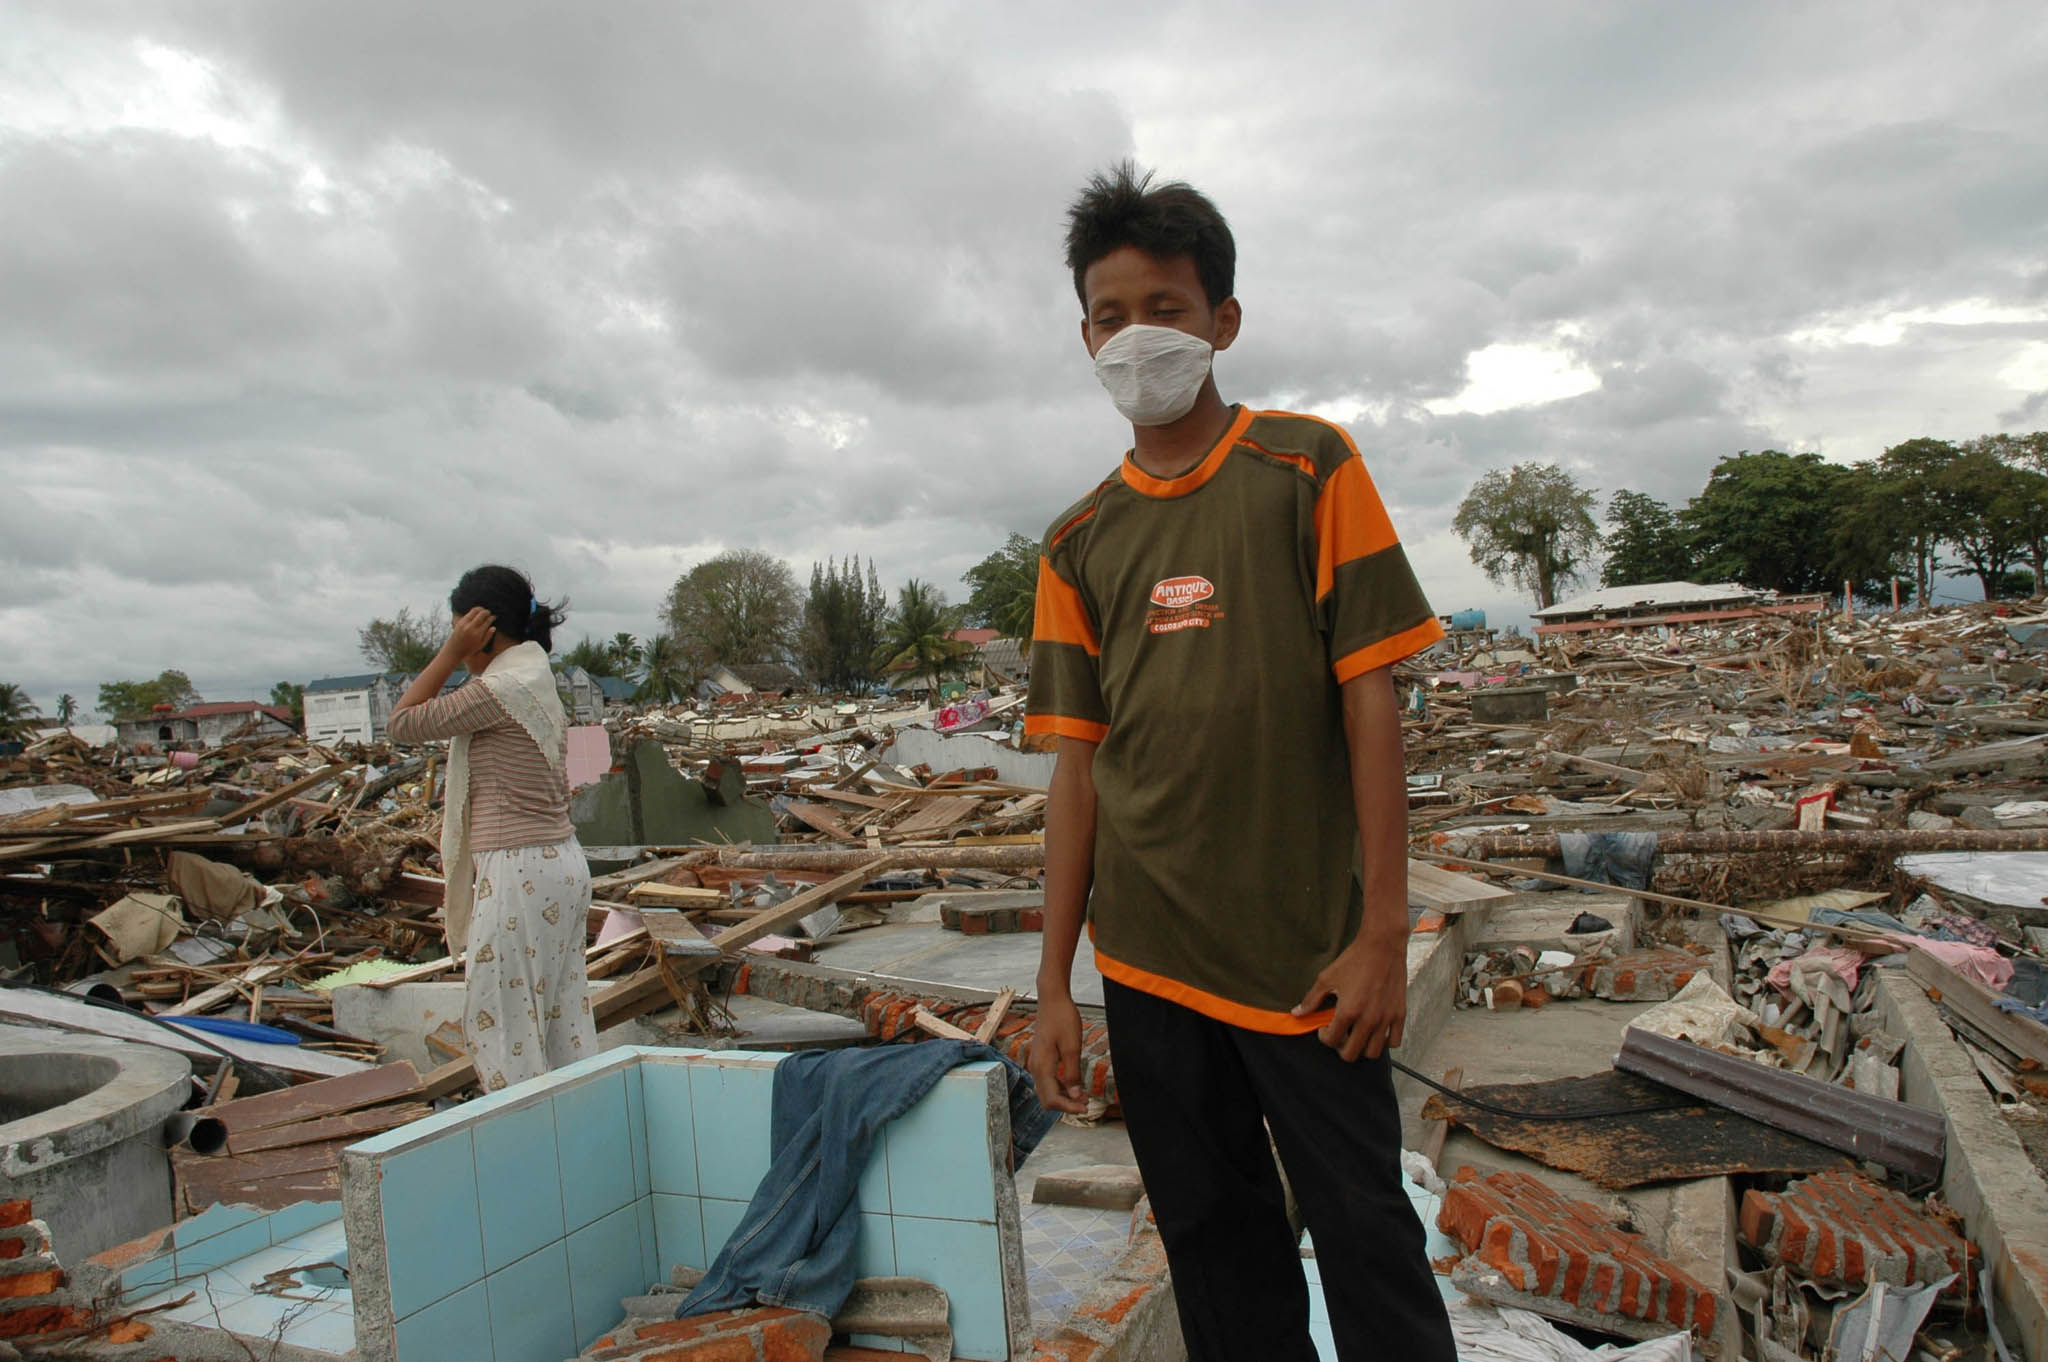 Survivors surveying the ruins of their former homes after the tsunami hit in Meulaboh, West Aceh (File photo 2004)